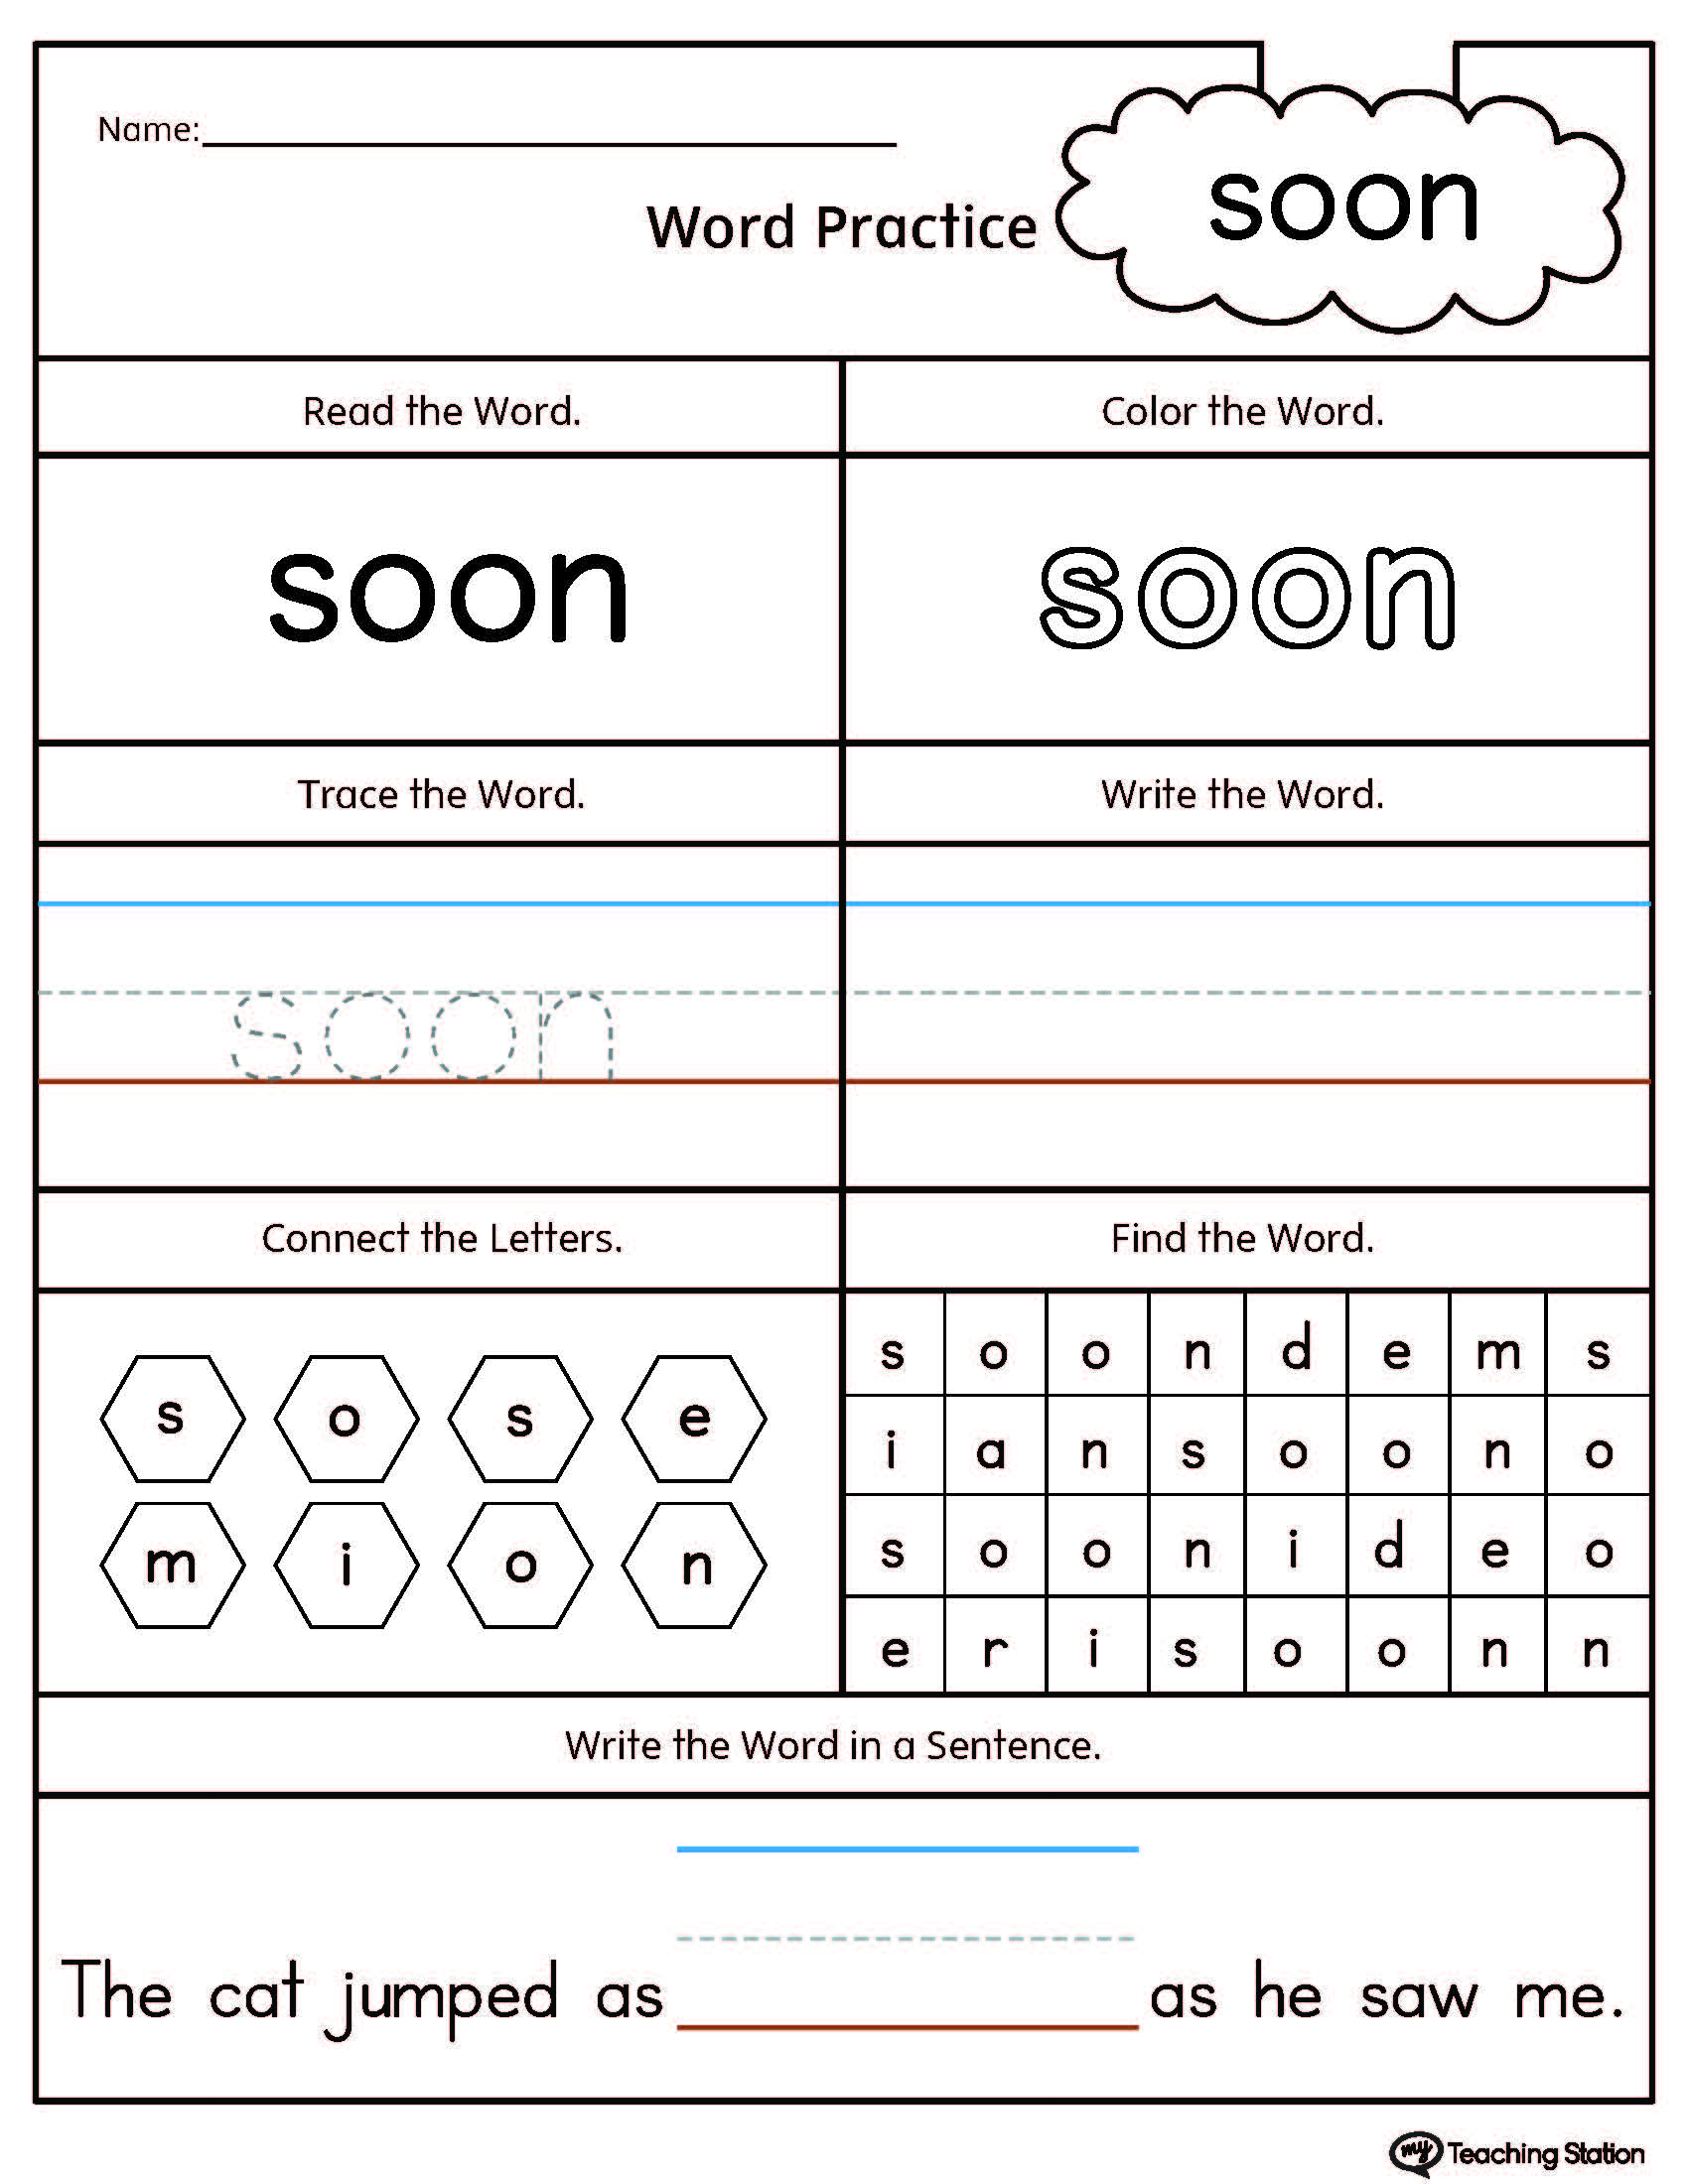 High Frequency Word Soon Printable Worksheet